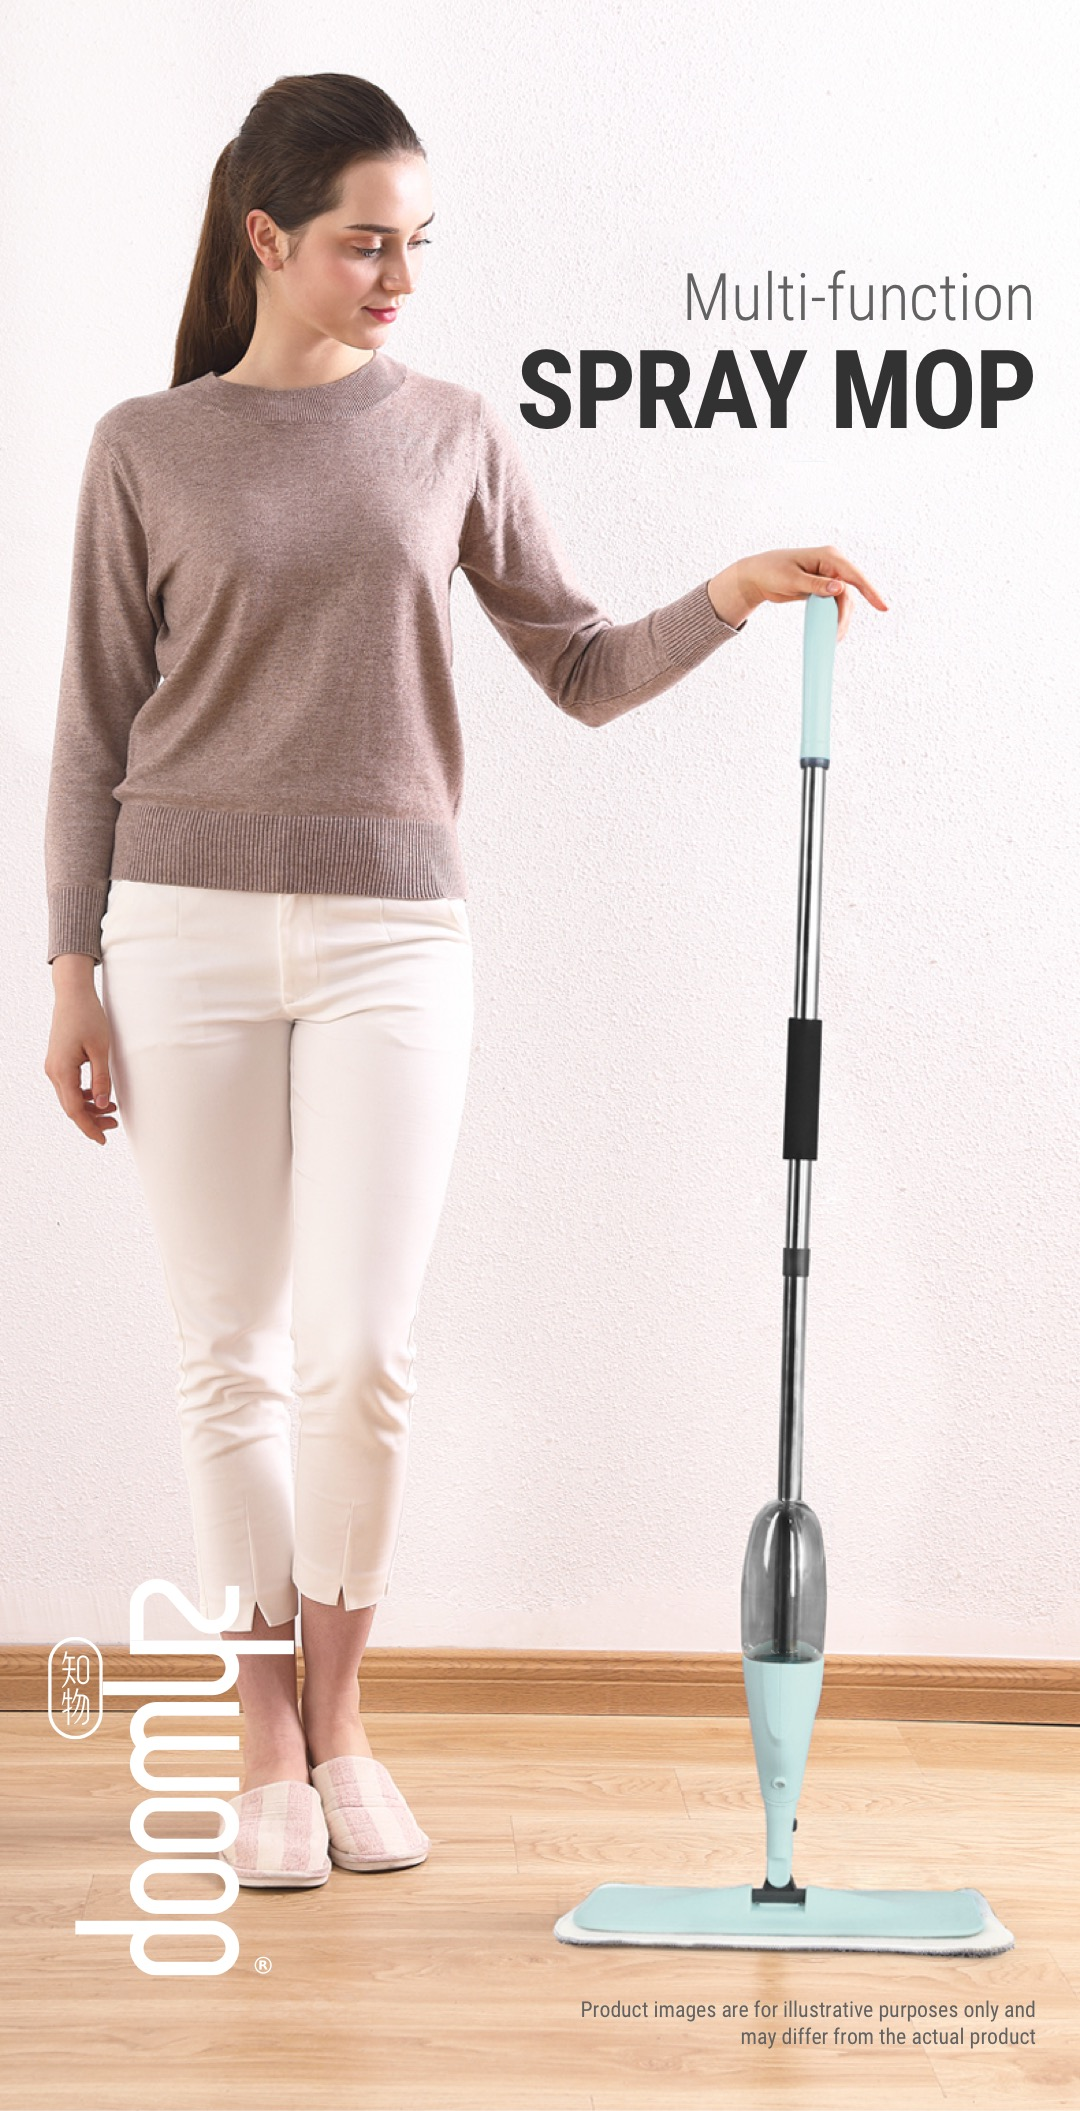 Zhwoop Multi-function Spray Mop